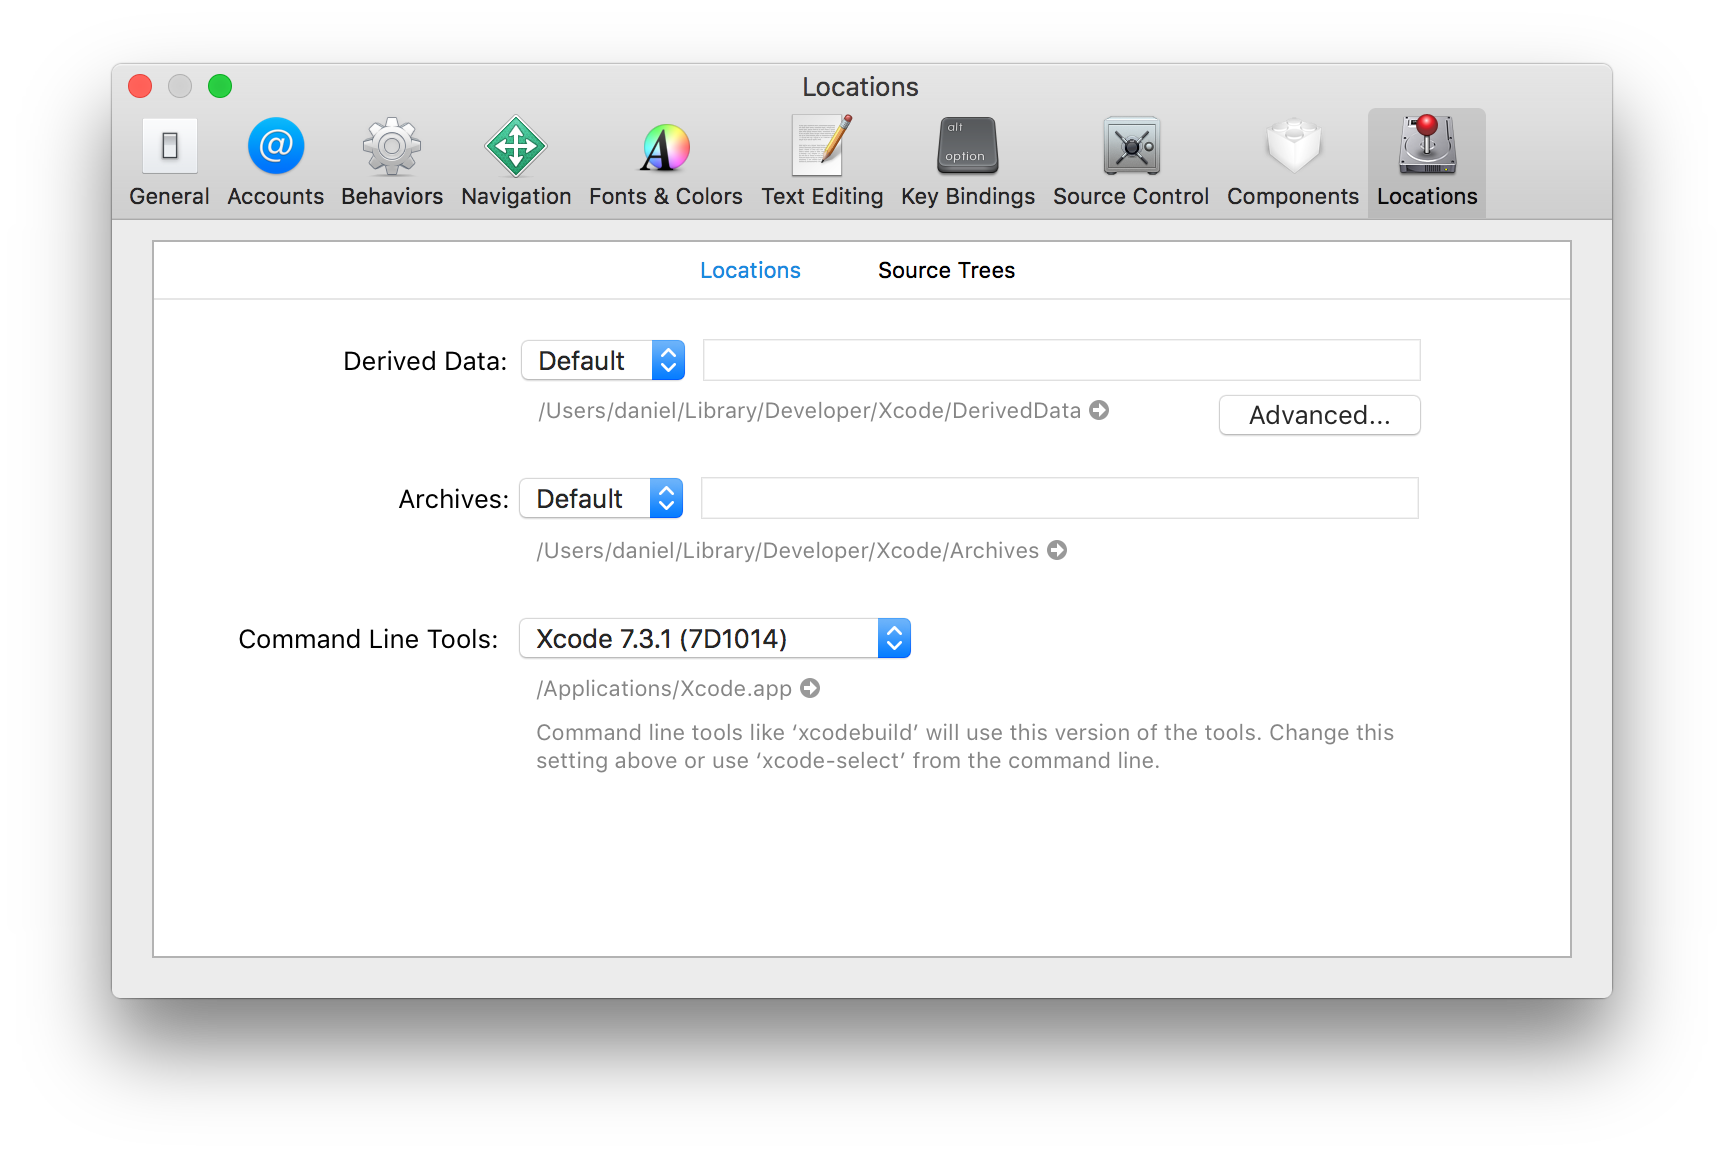 Get the Location of DerivedData in Xcode